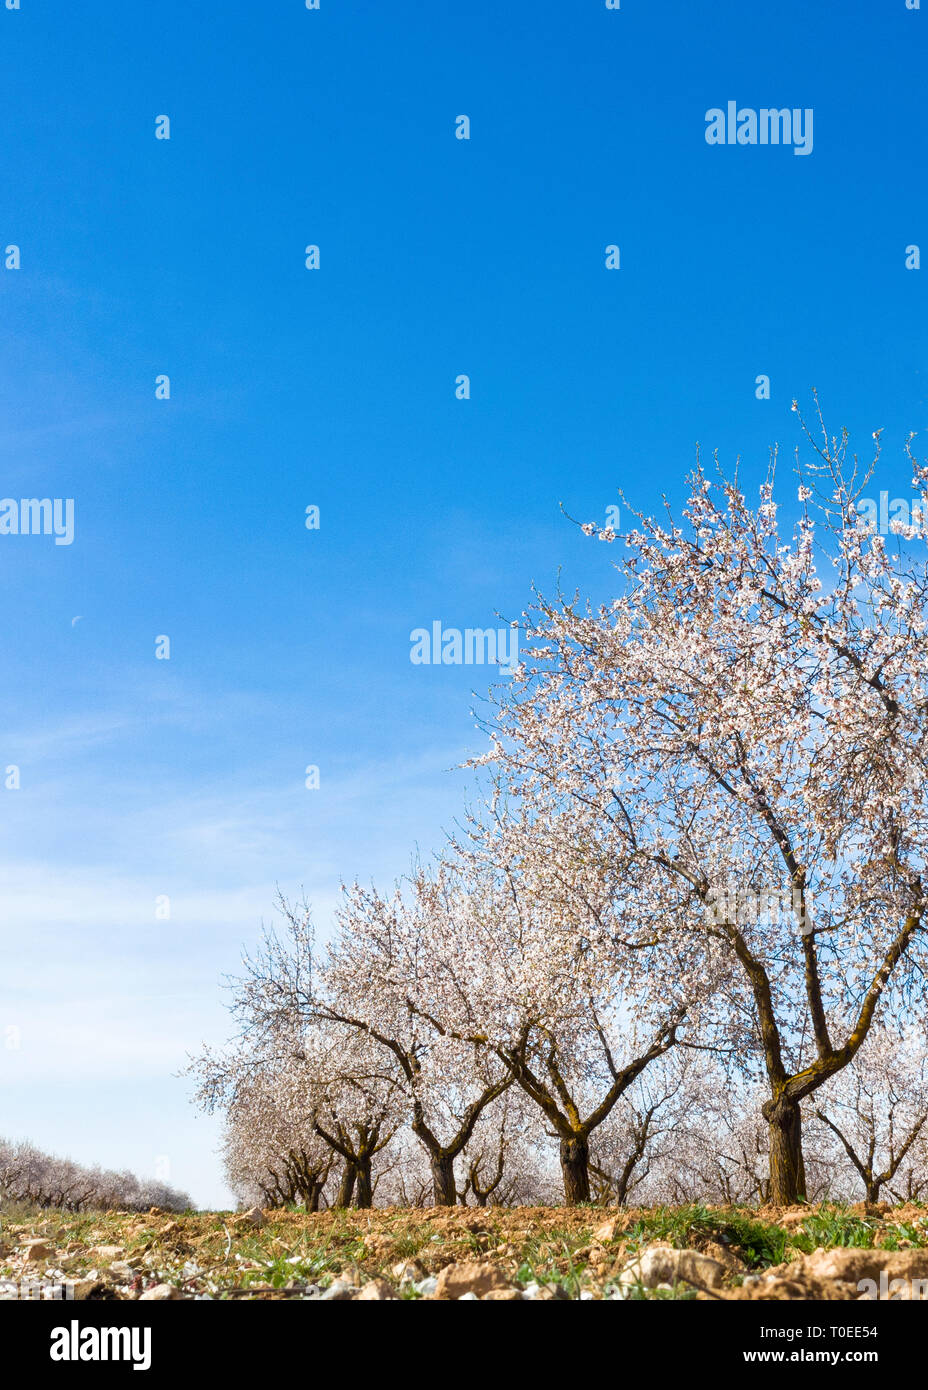 vertical image of a leading line of pretty almond trees in blossom shot for copy space with a blue sky background taken from ground level - Stock Image